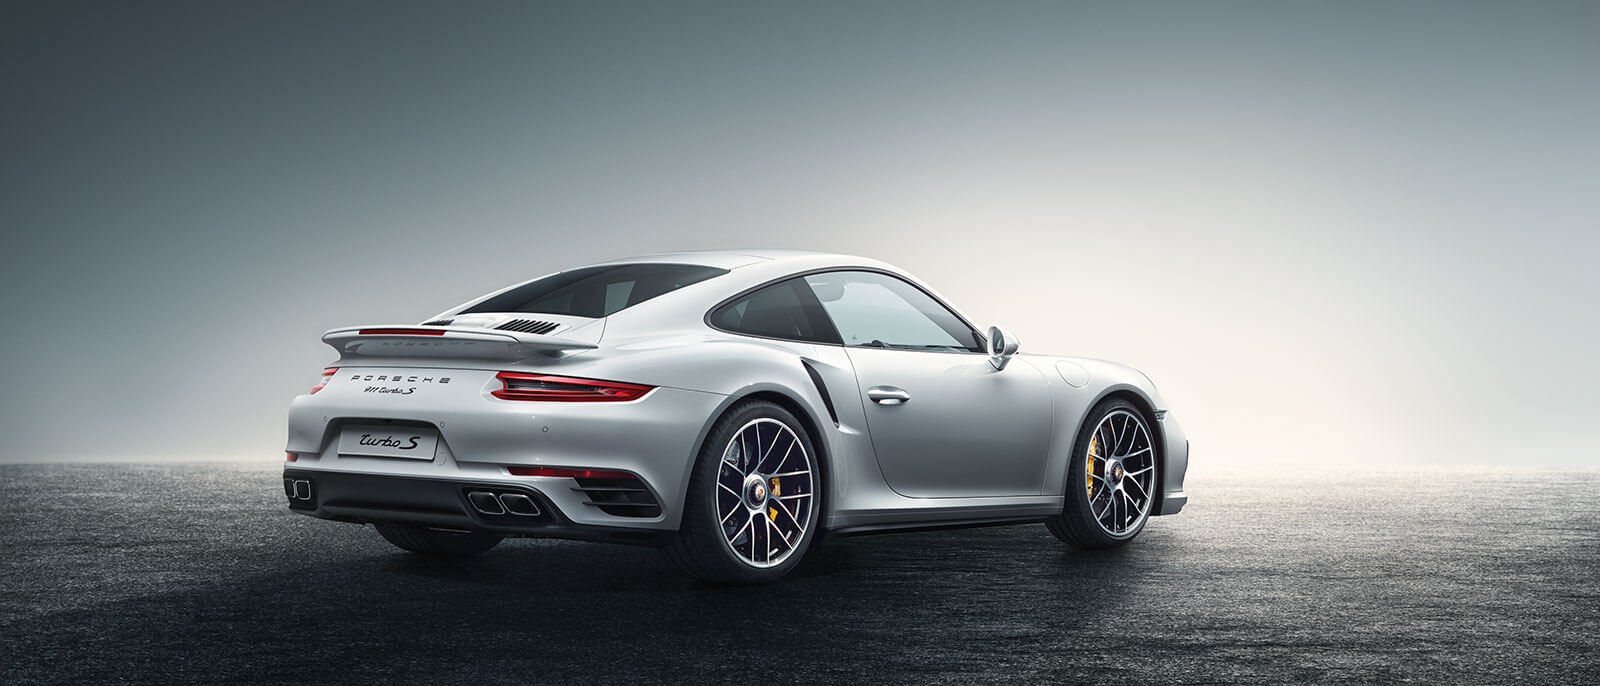 2016 Porsche 911 Turbo S rear view